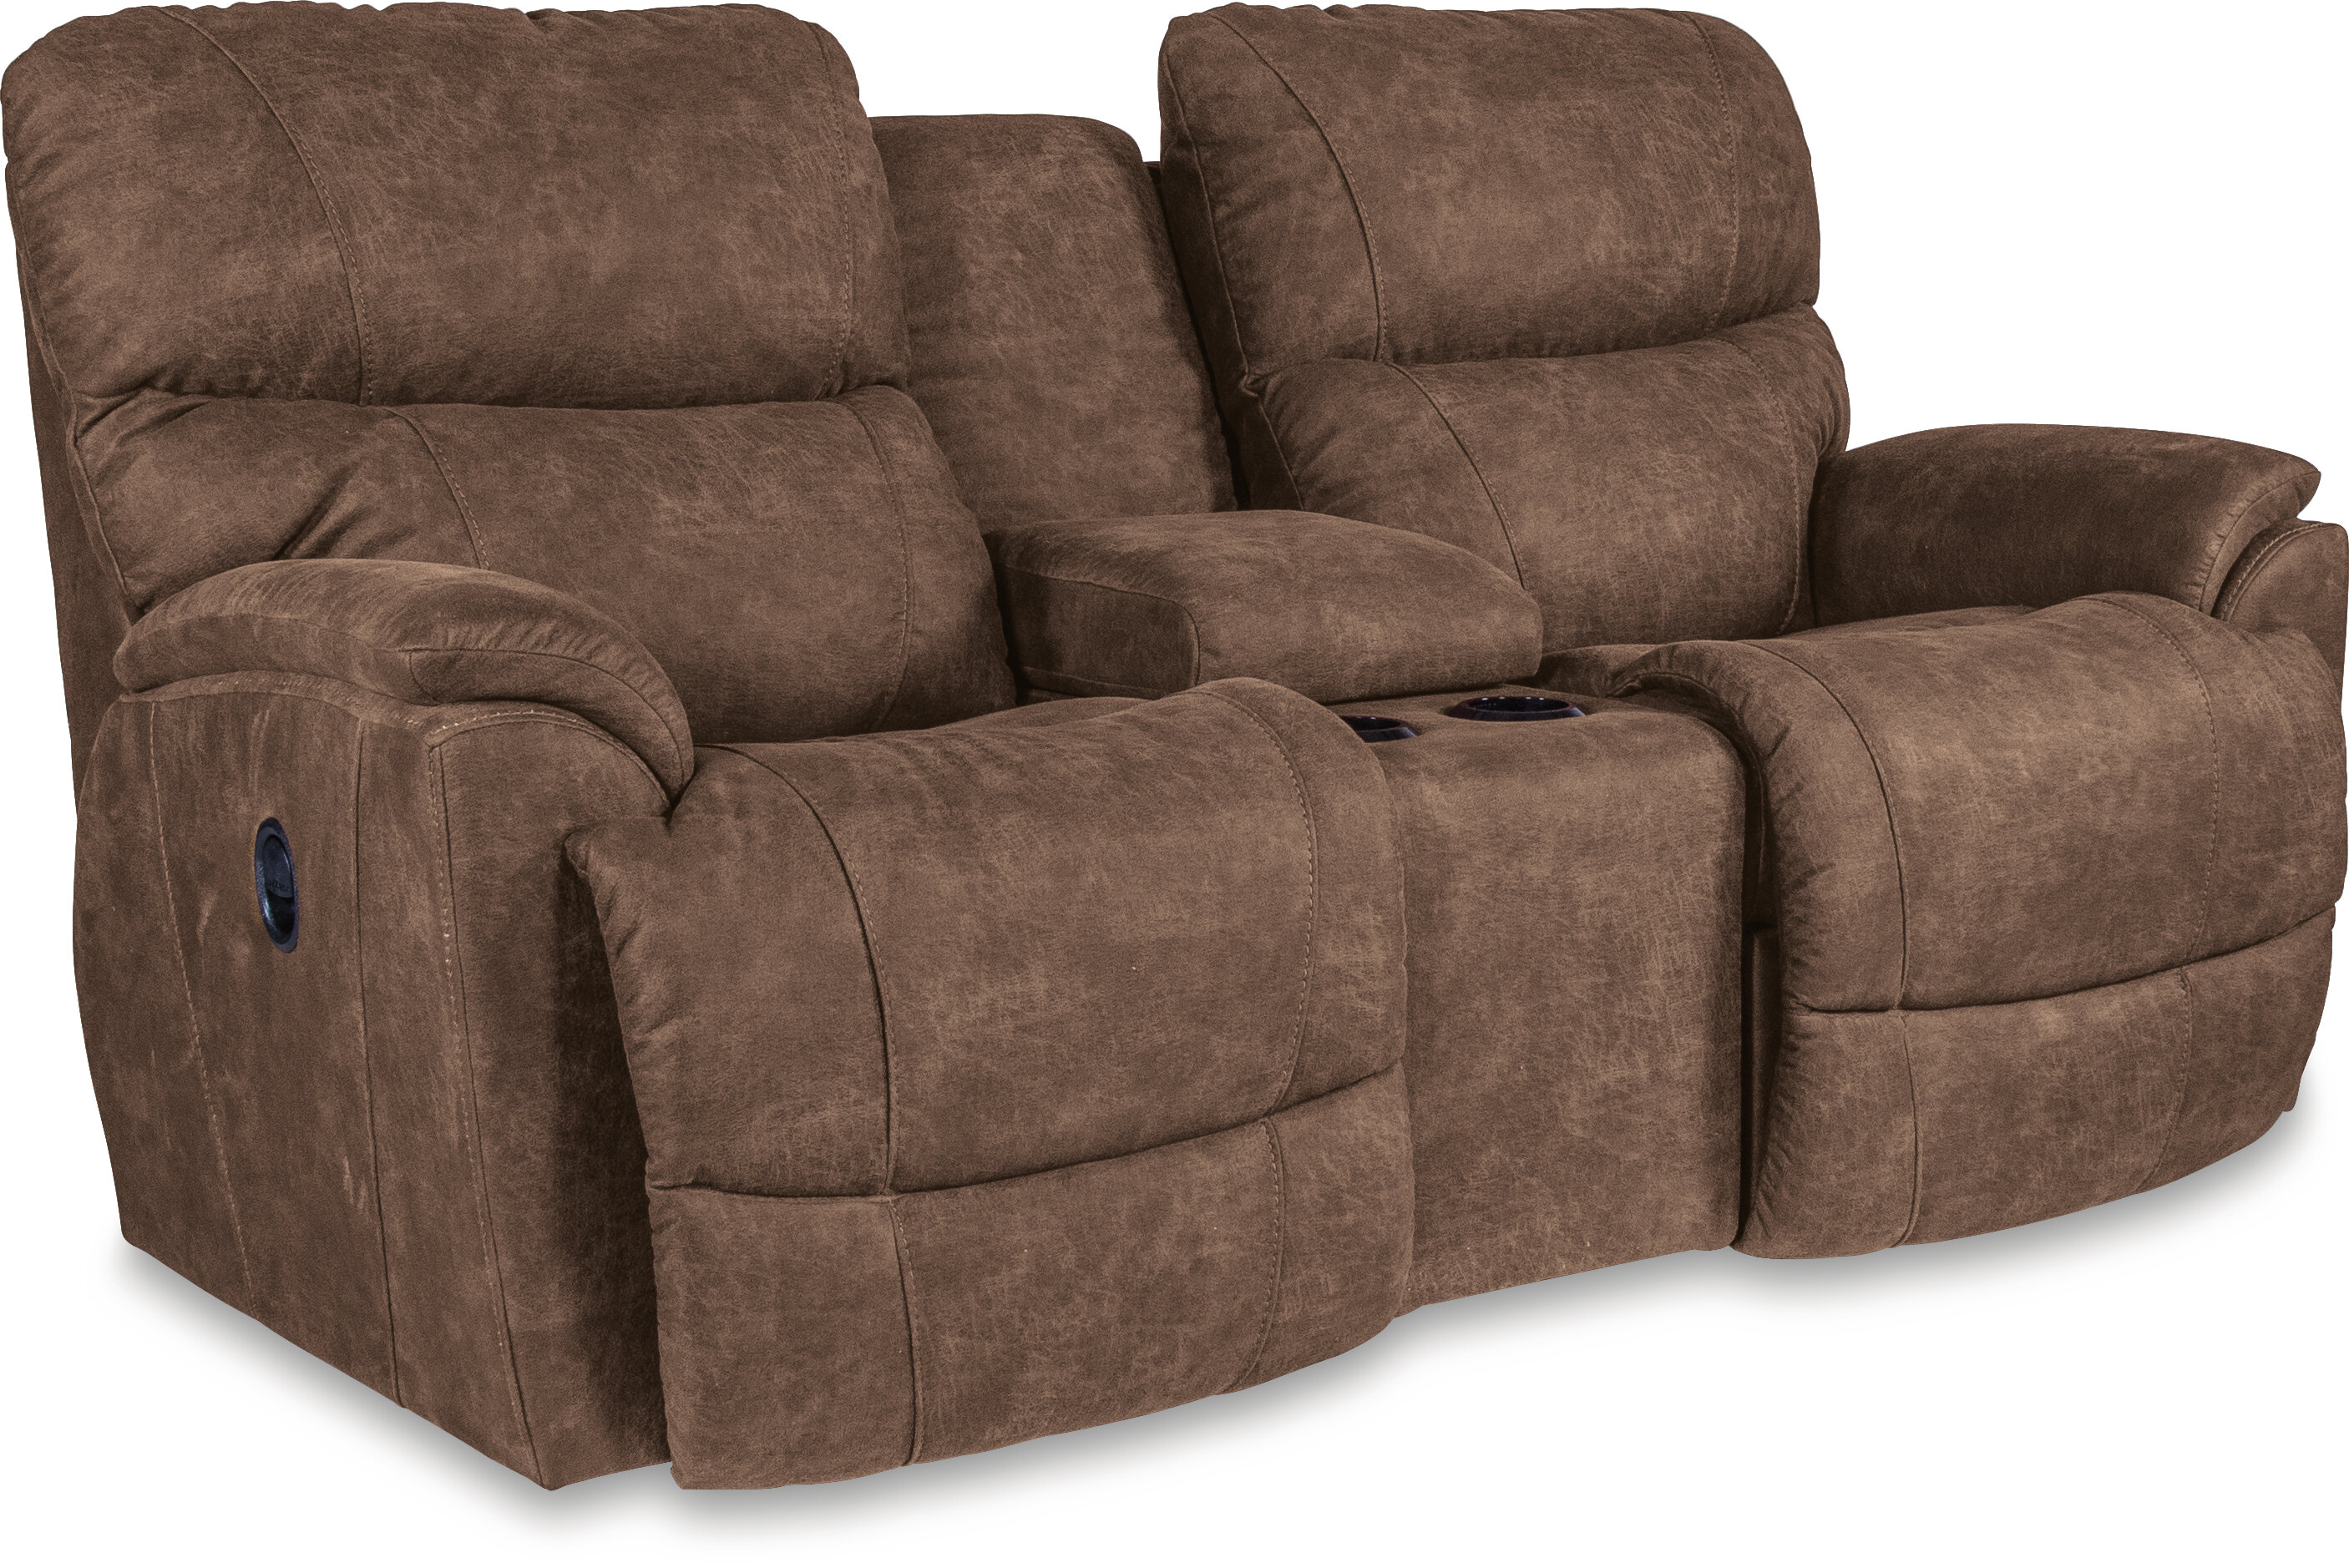 Superb Trouper Reclining Loveseat With Console Caraccident5 Cool Chair Designs And Ideas Caraccident5Info